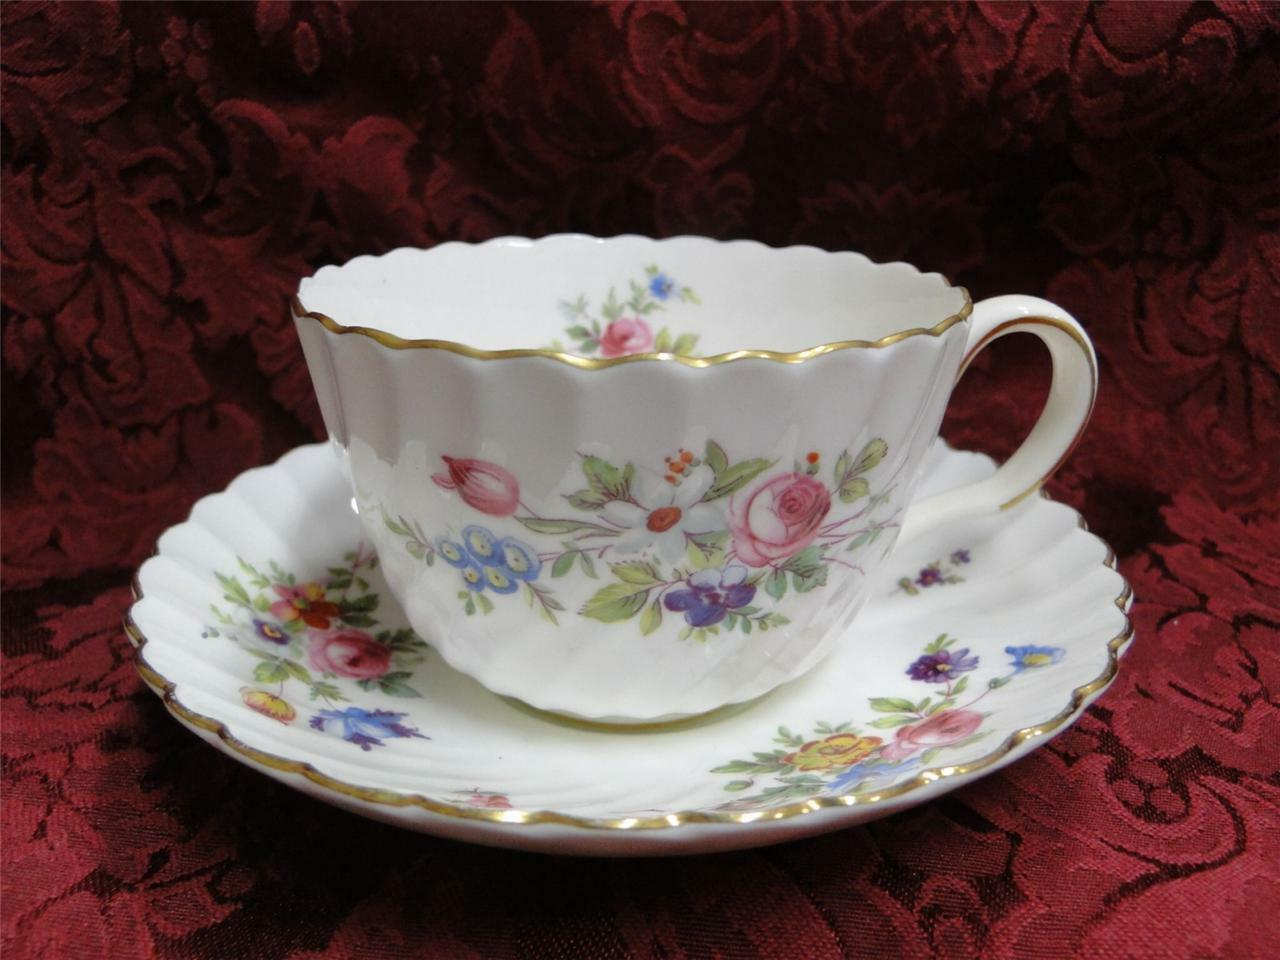 Minton Marlow, Floral with Gold Trim: Cup and Saucer Set (s)